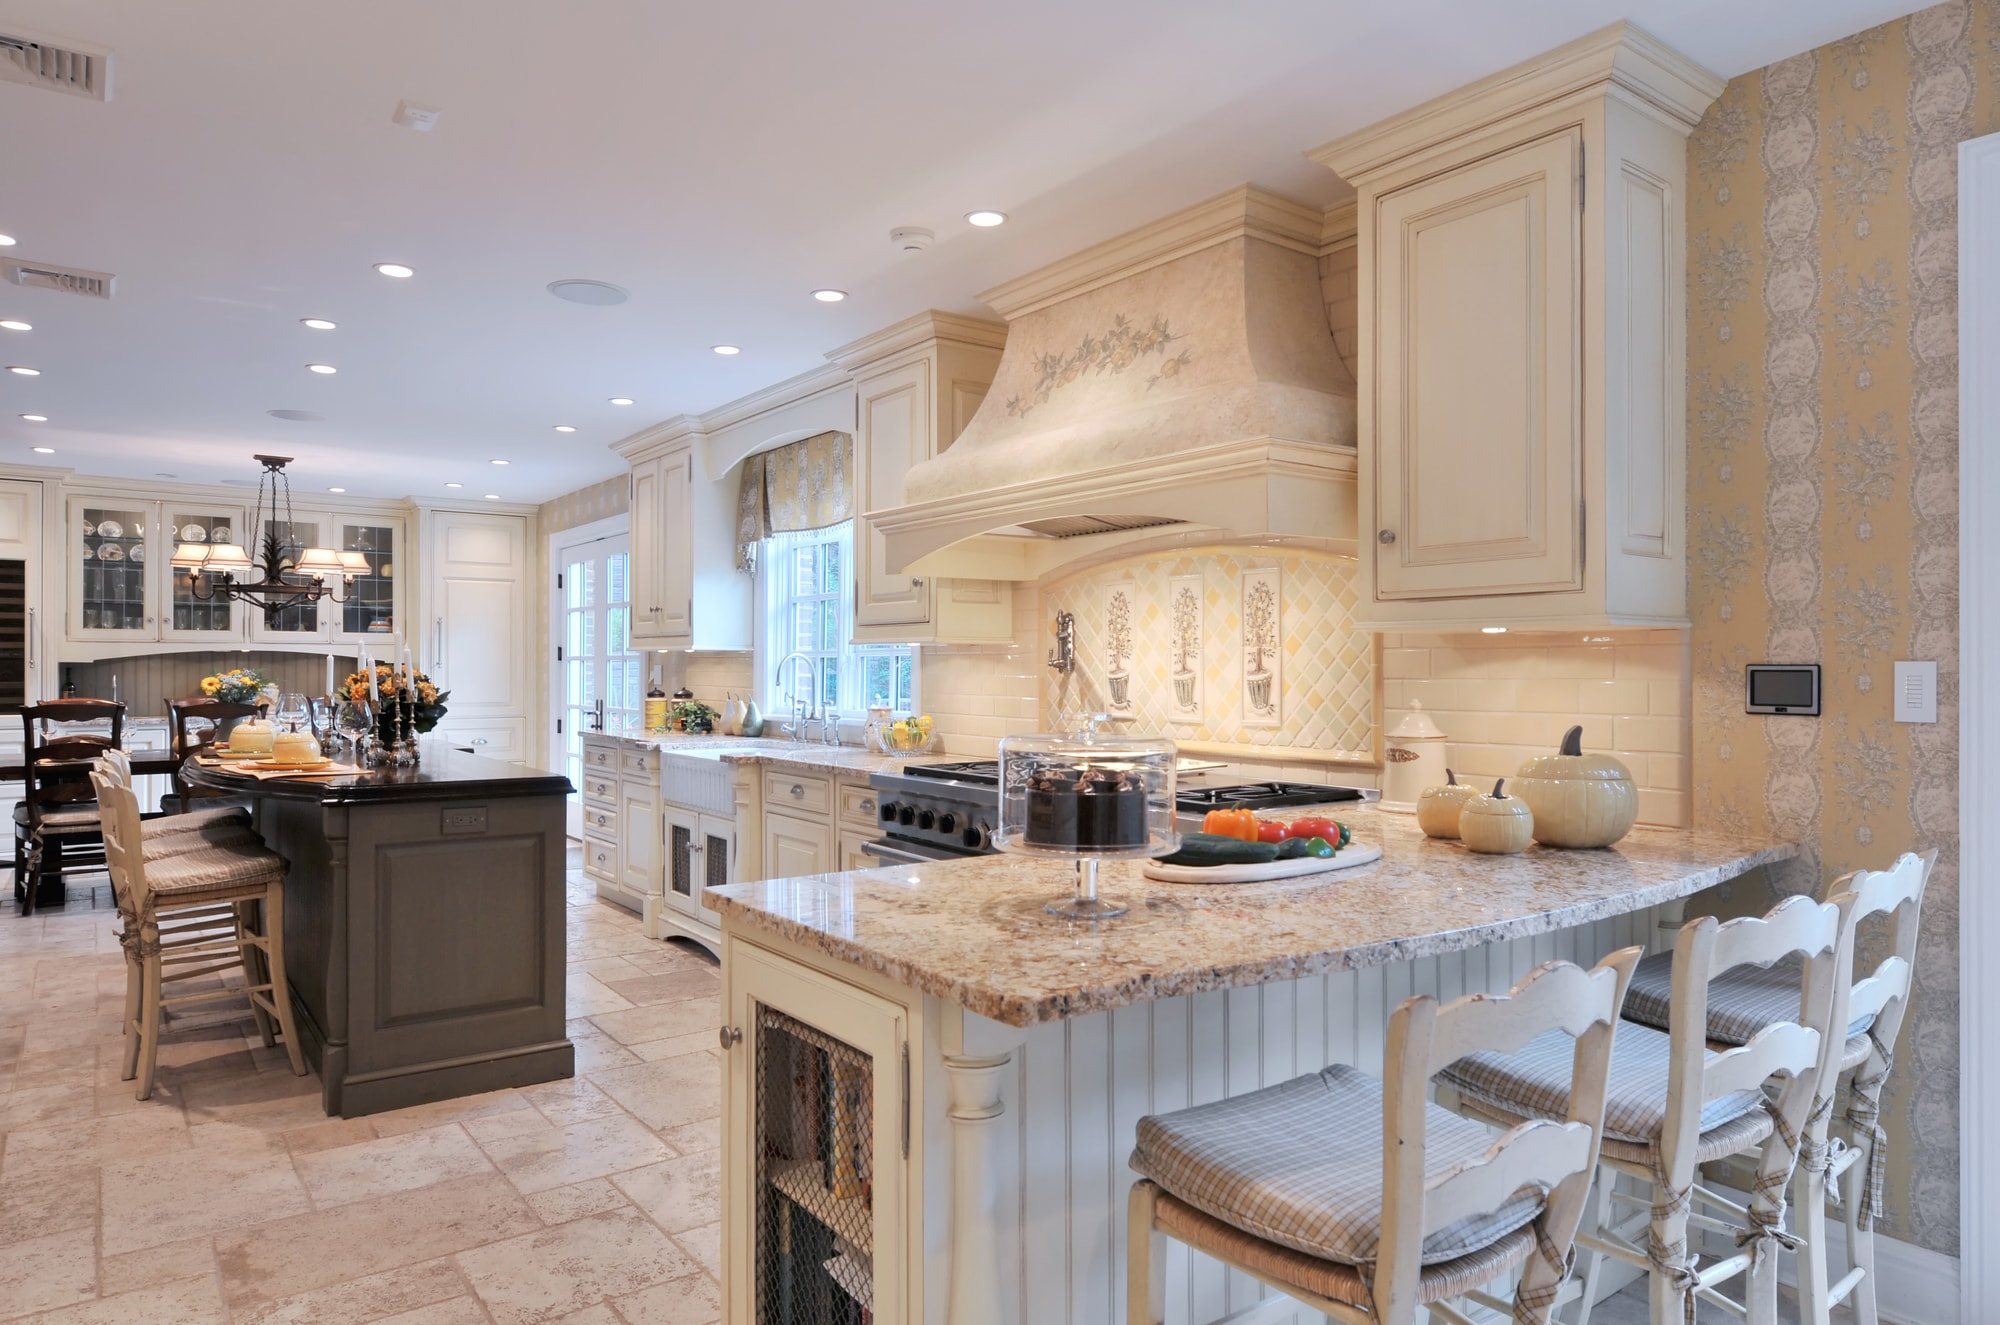 Traditional style kitchen with spacious floor and lovely design